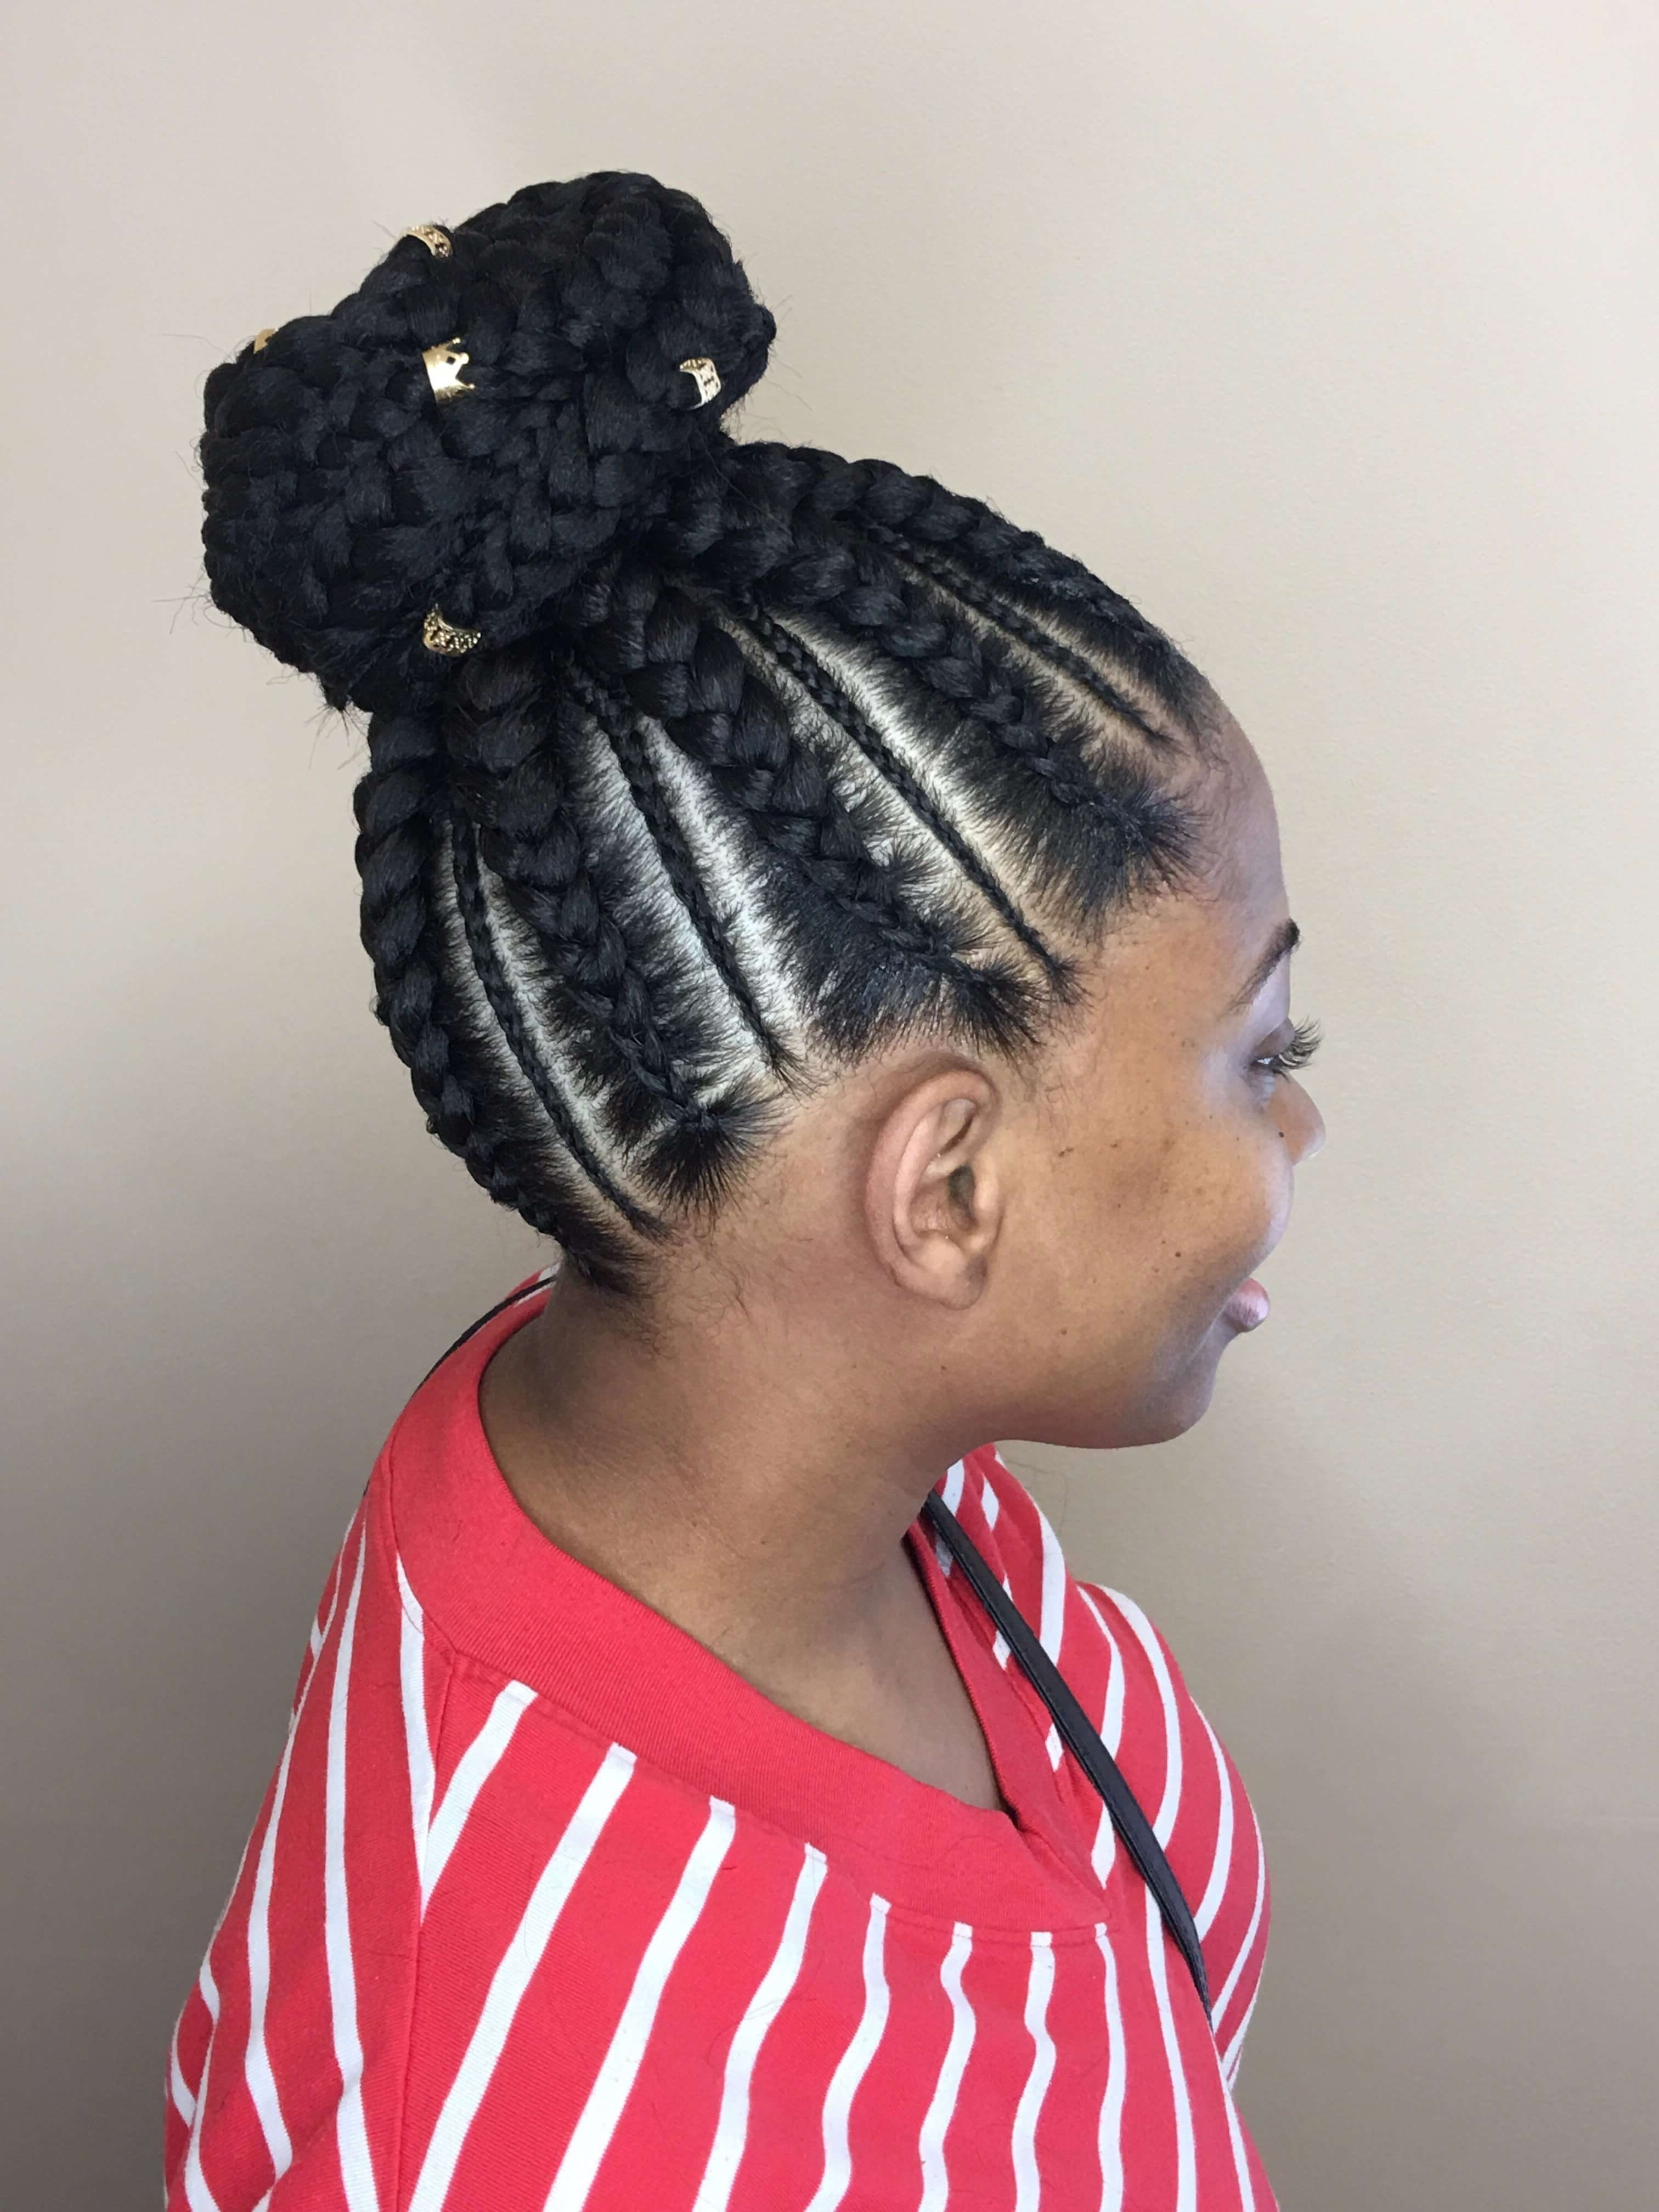 Newest Classy 2 In 1 Ponytail Braid Hairstyles In 50 Natural Goddess Braids To Bless Ethnic Hair In  (View 16 of 20)